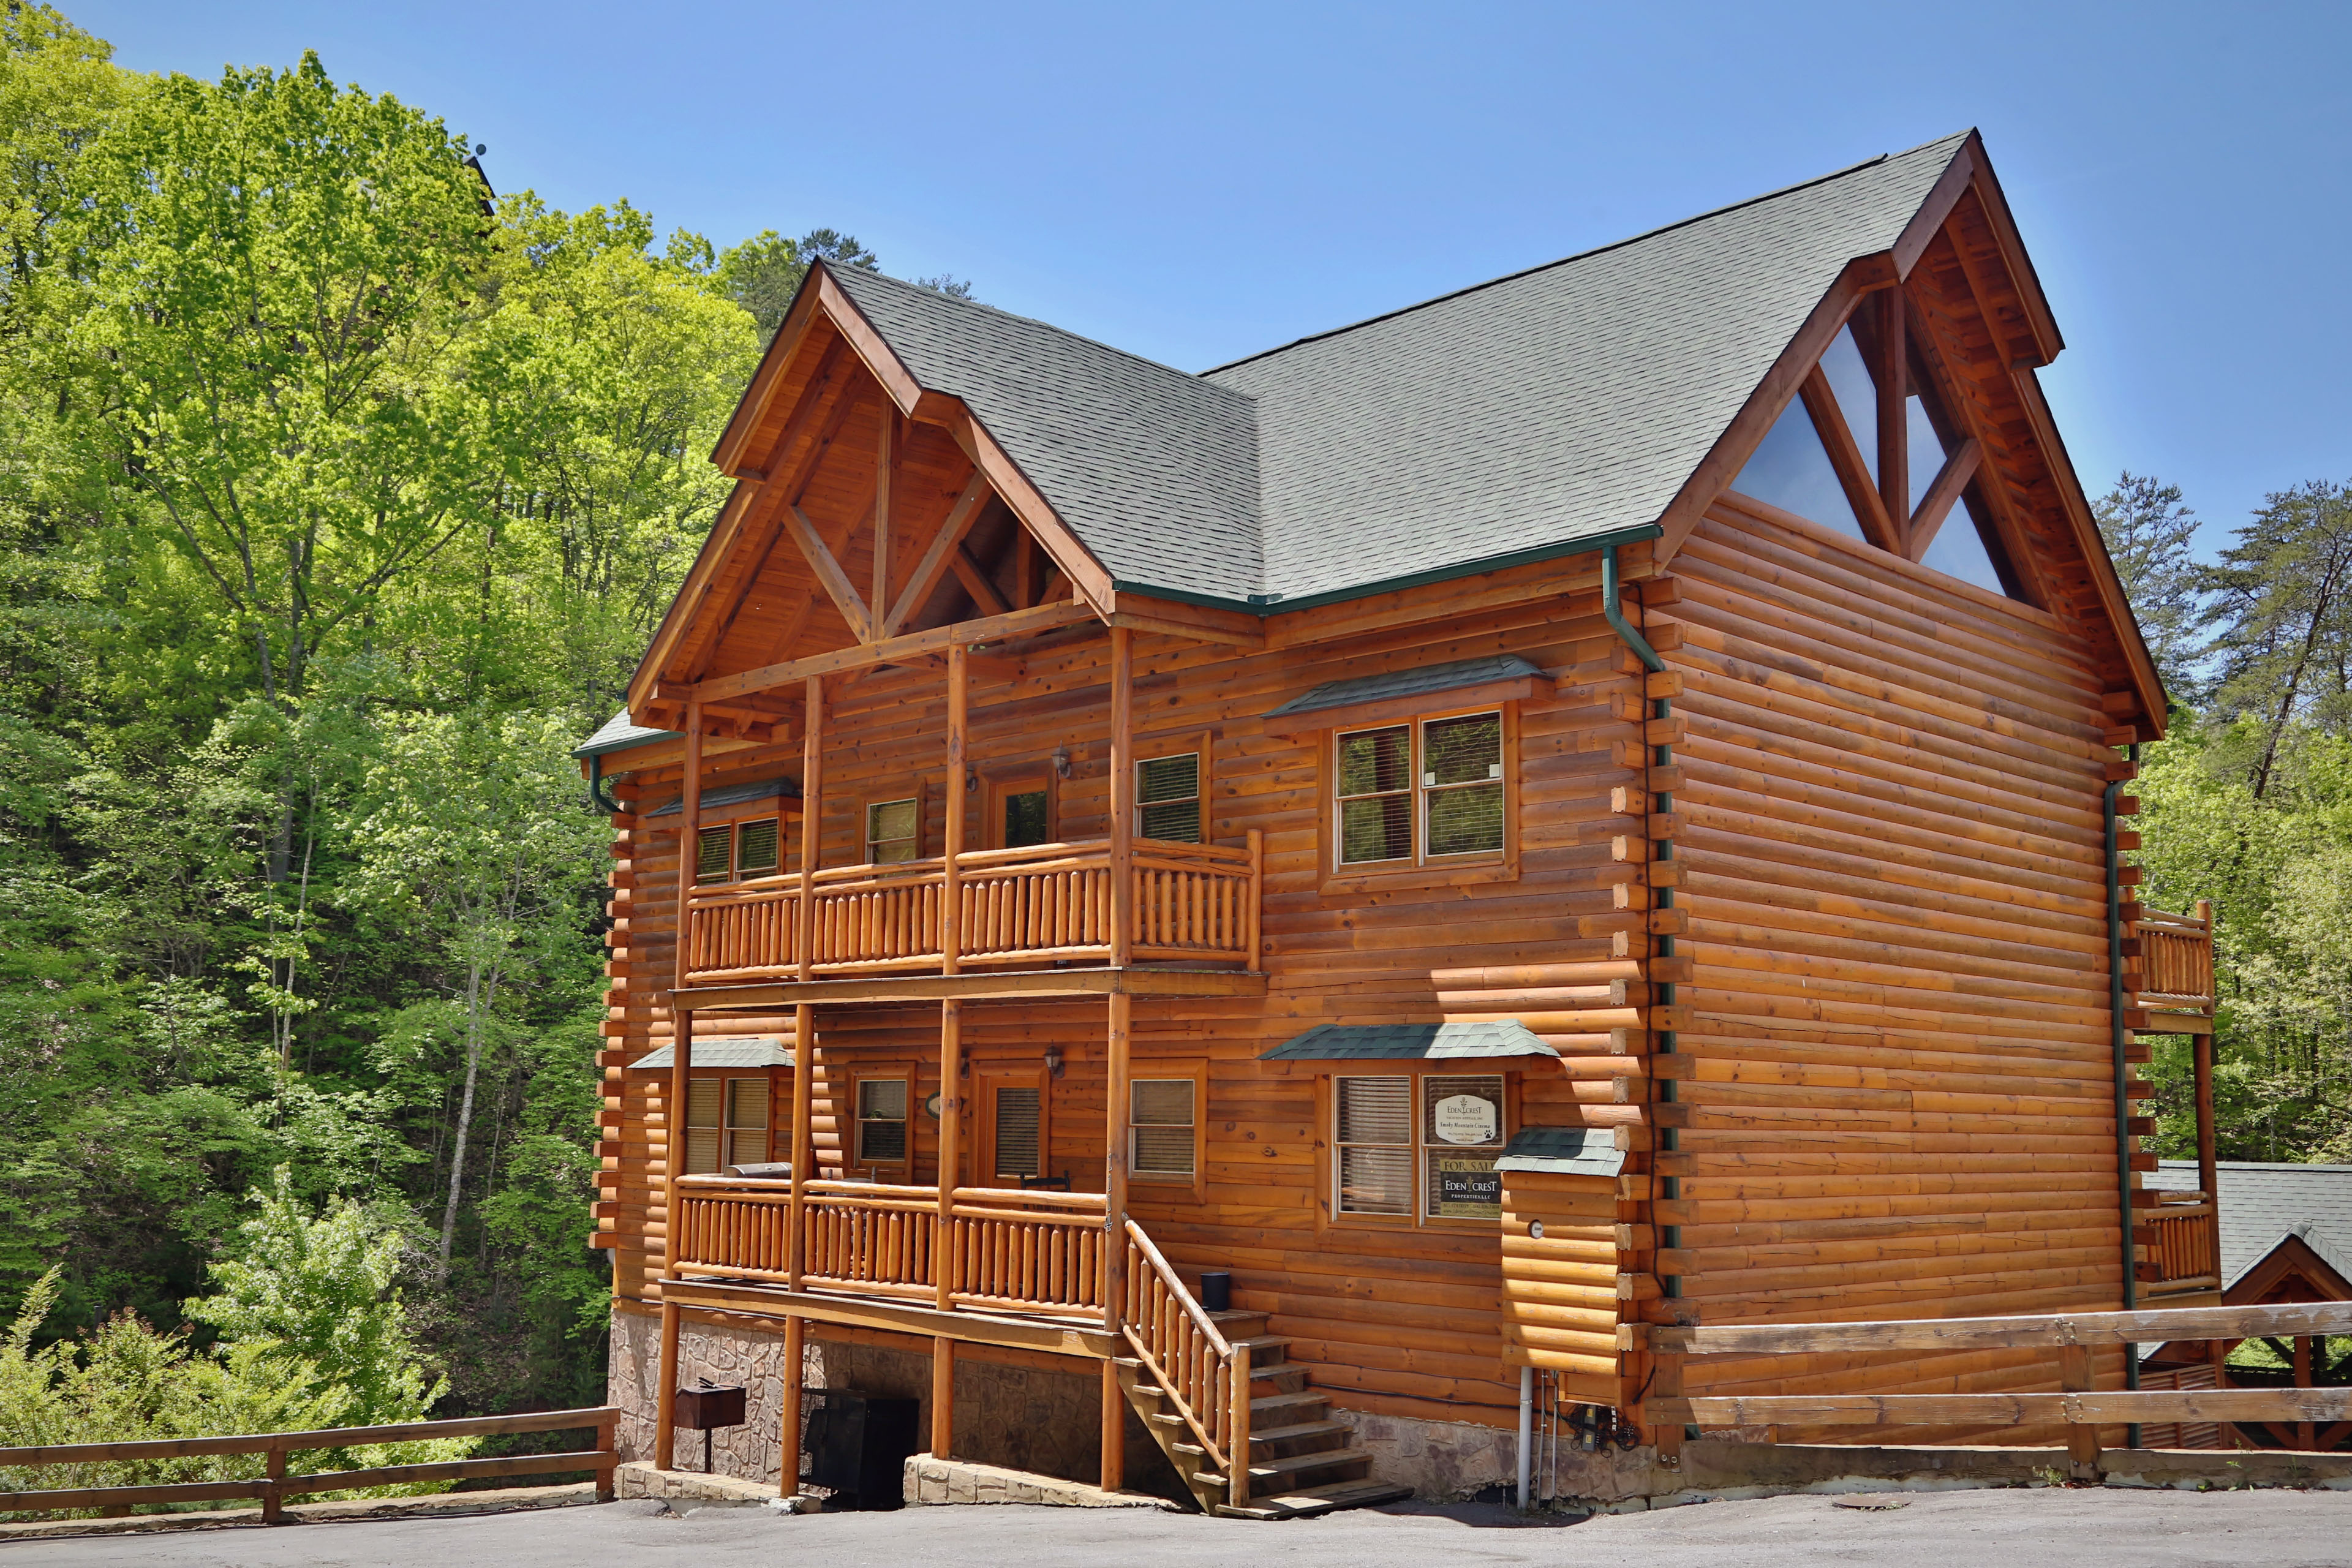 tn smokey rental great gatlburg vrbo tennessee cabins mounta mountain smoky cabin rentals